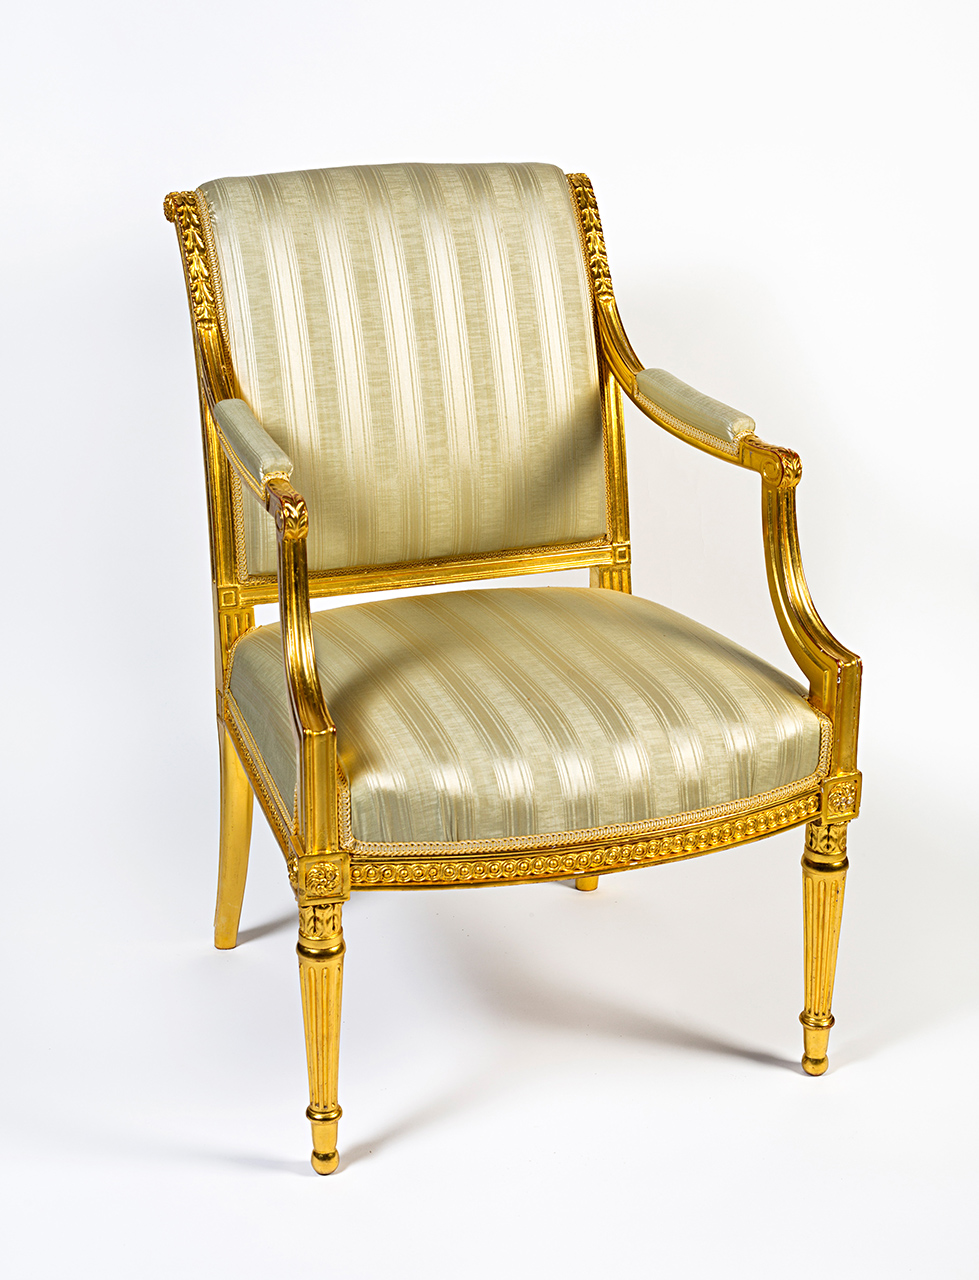 A set of gilt-mahogany seat furniture, comprising a sofa and ten armchairs, George III, circa 1780.